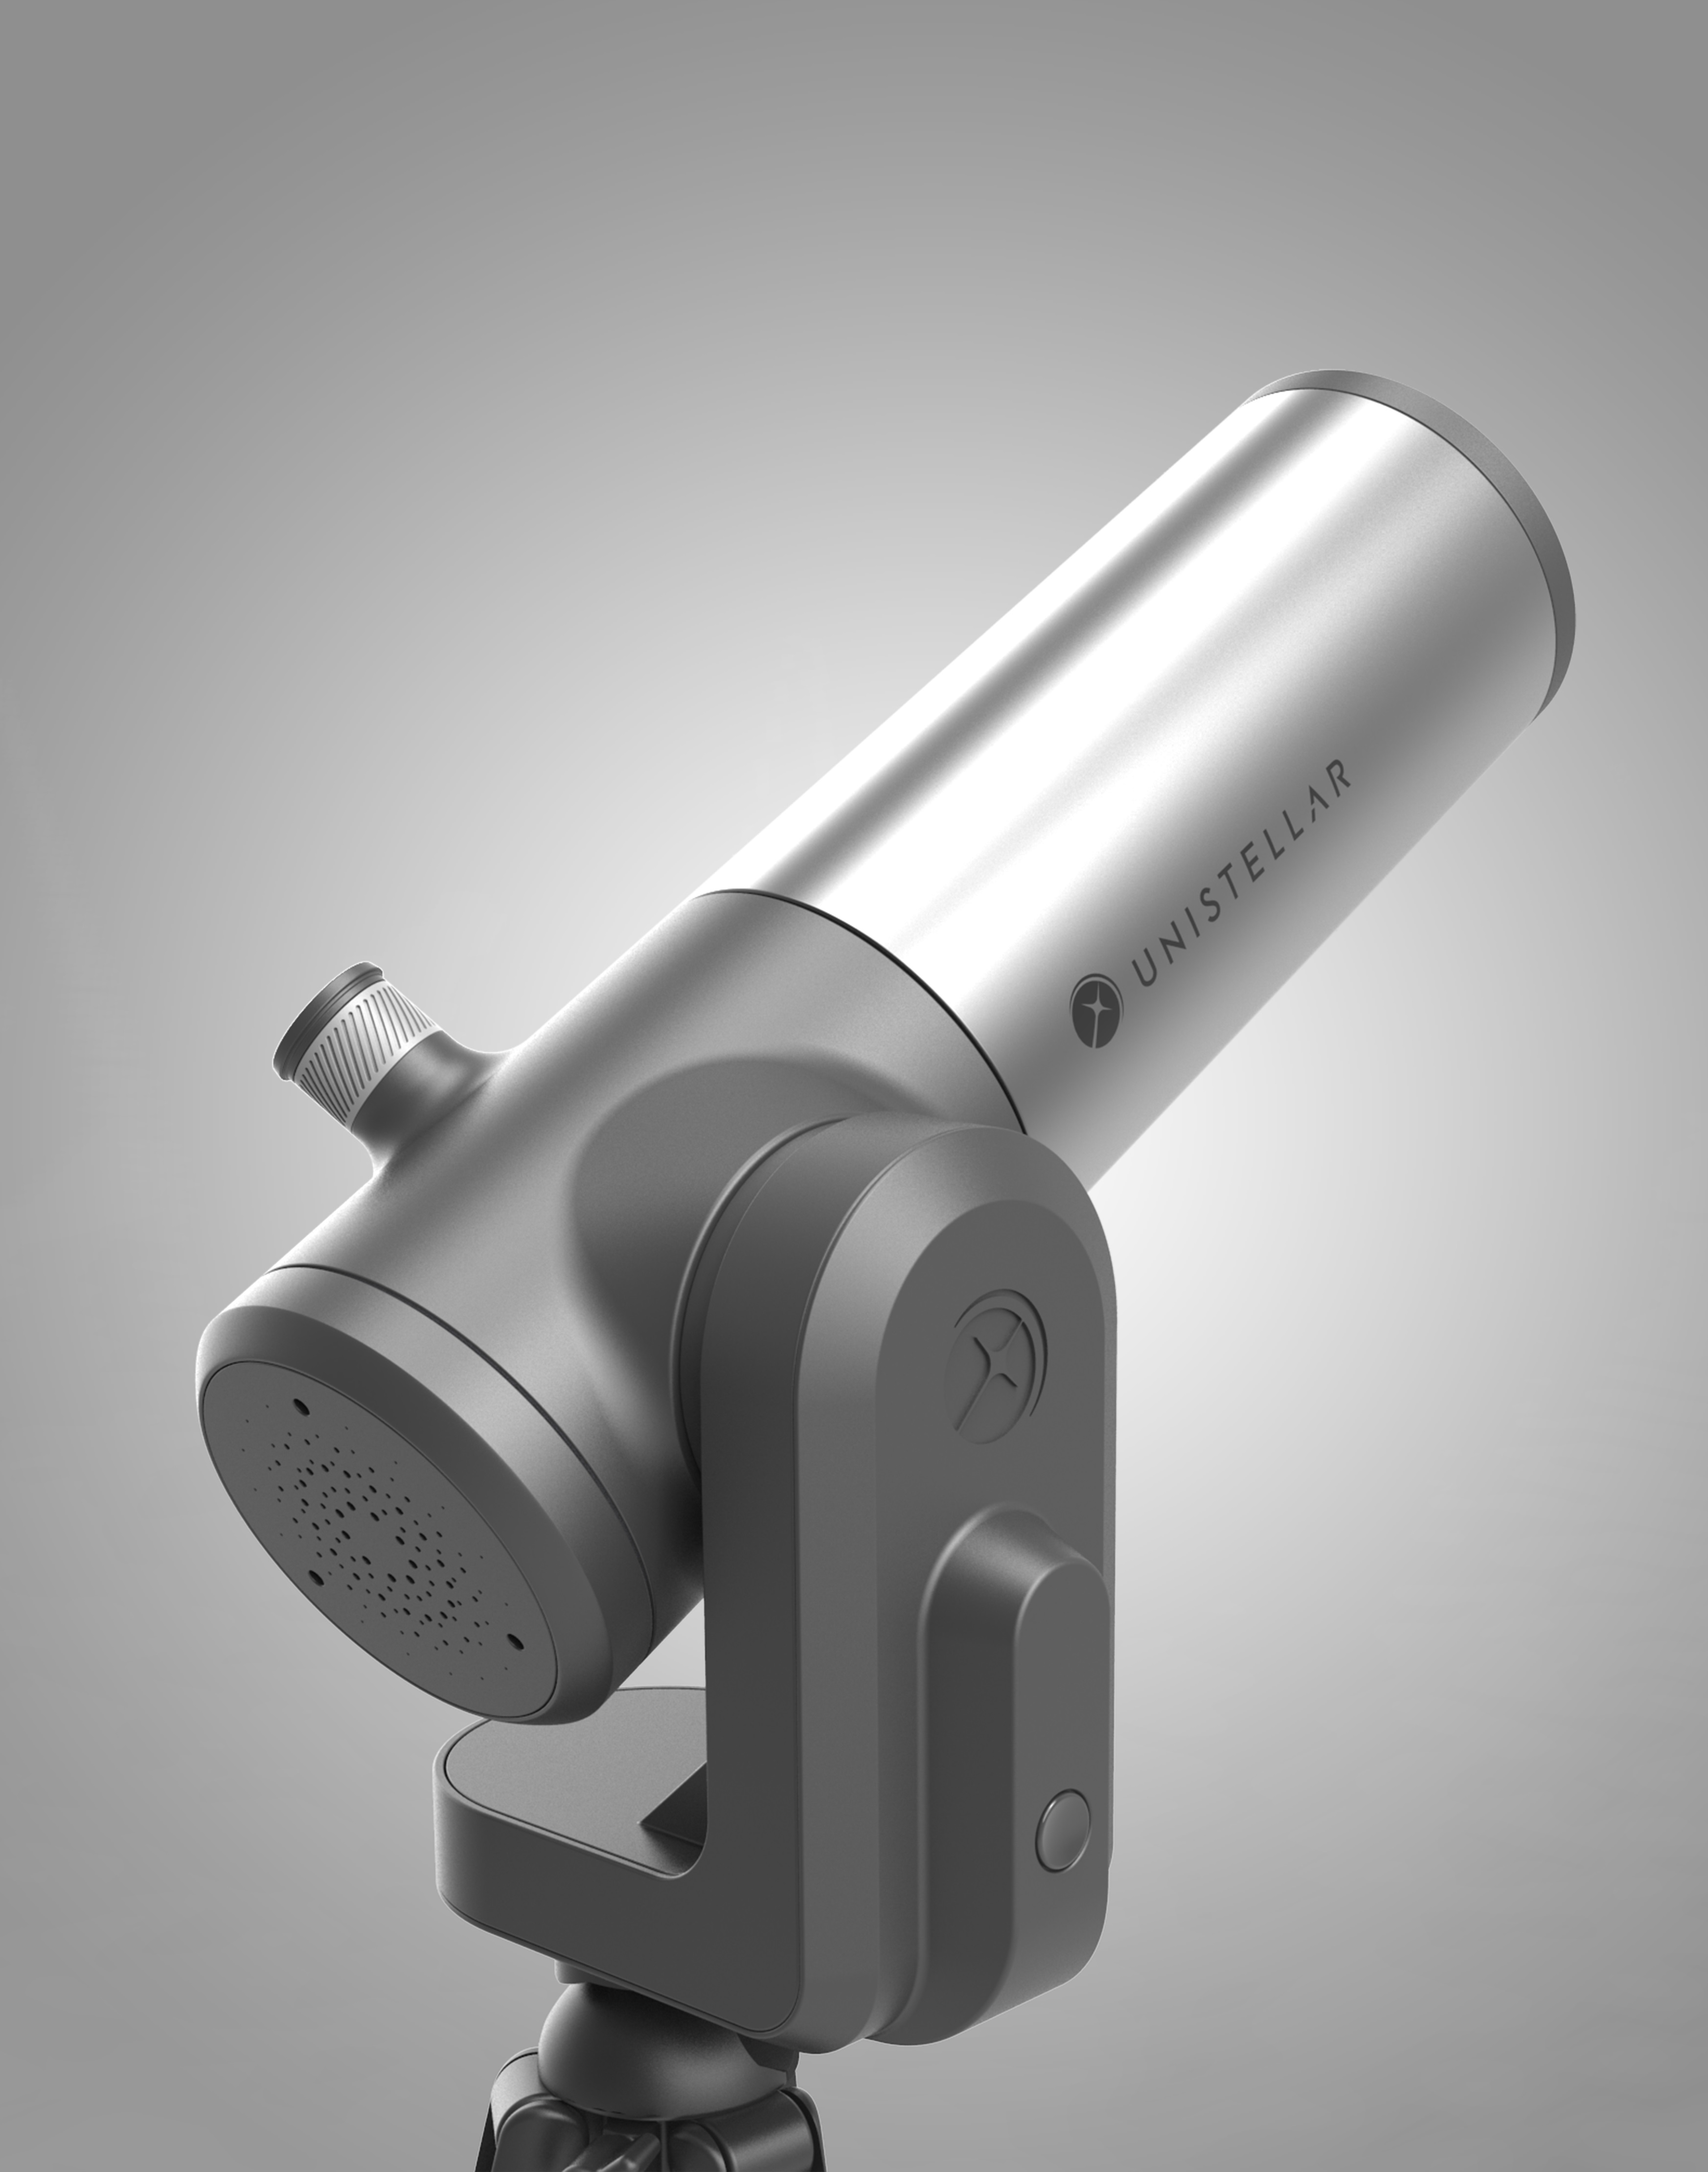 Unistellar's telescope will be available in Fall 2017 for its presales crowdfunding campaign